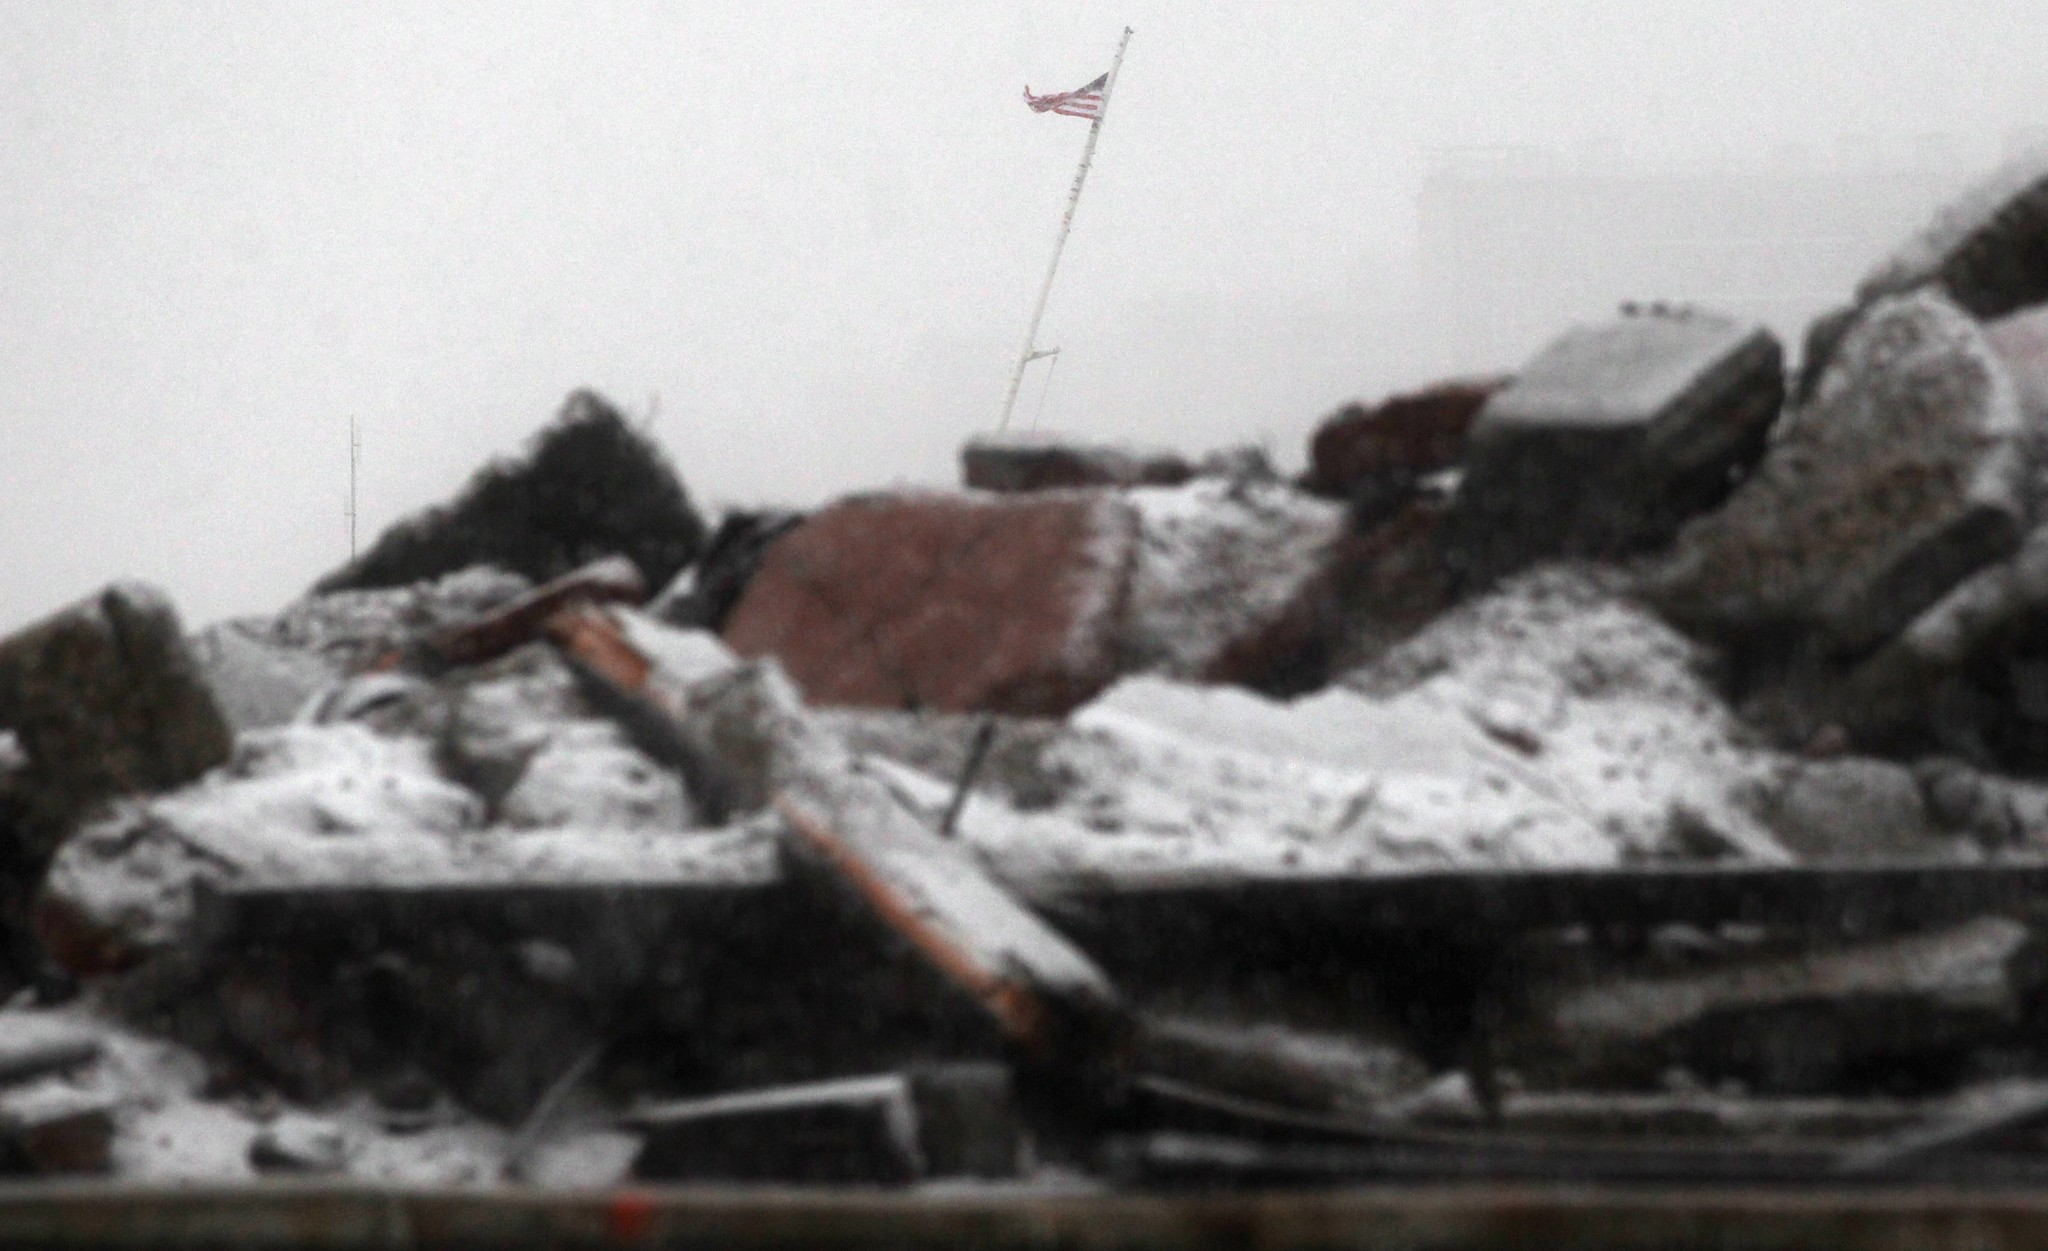 Photo: NEW YORK, NY - NOVEMBER 07:  Snow falls on debris with an American flag flying as a Nor'Easter arrives in the Rockaway neighborhood on November 7, 2012 in the Queens borough of New York City. The Rockaway Peninsula was especially hard hit by Superstorm Sandy and some are evacuating ahead of the coming storm.   (Photo by Mario Tama/Getty Images)